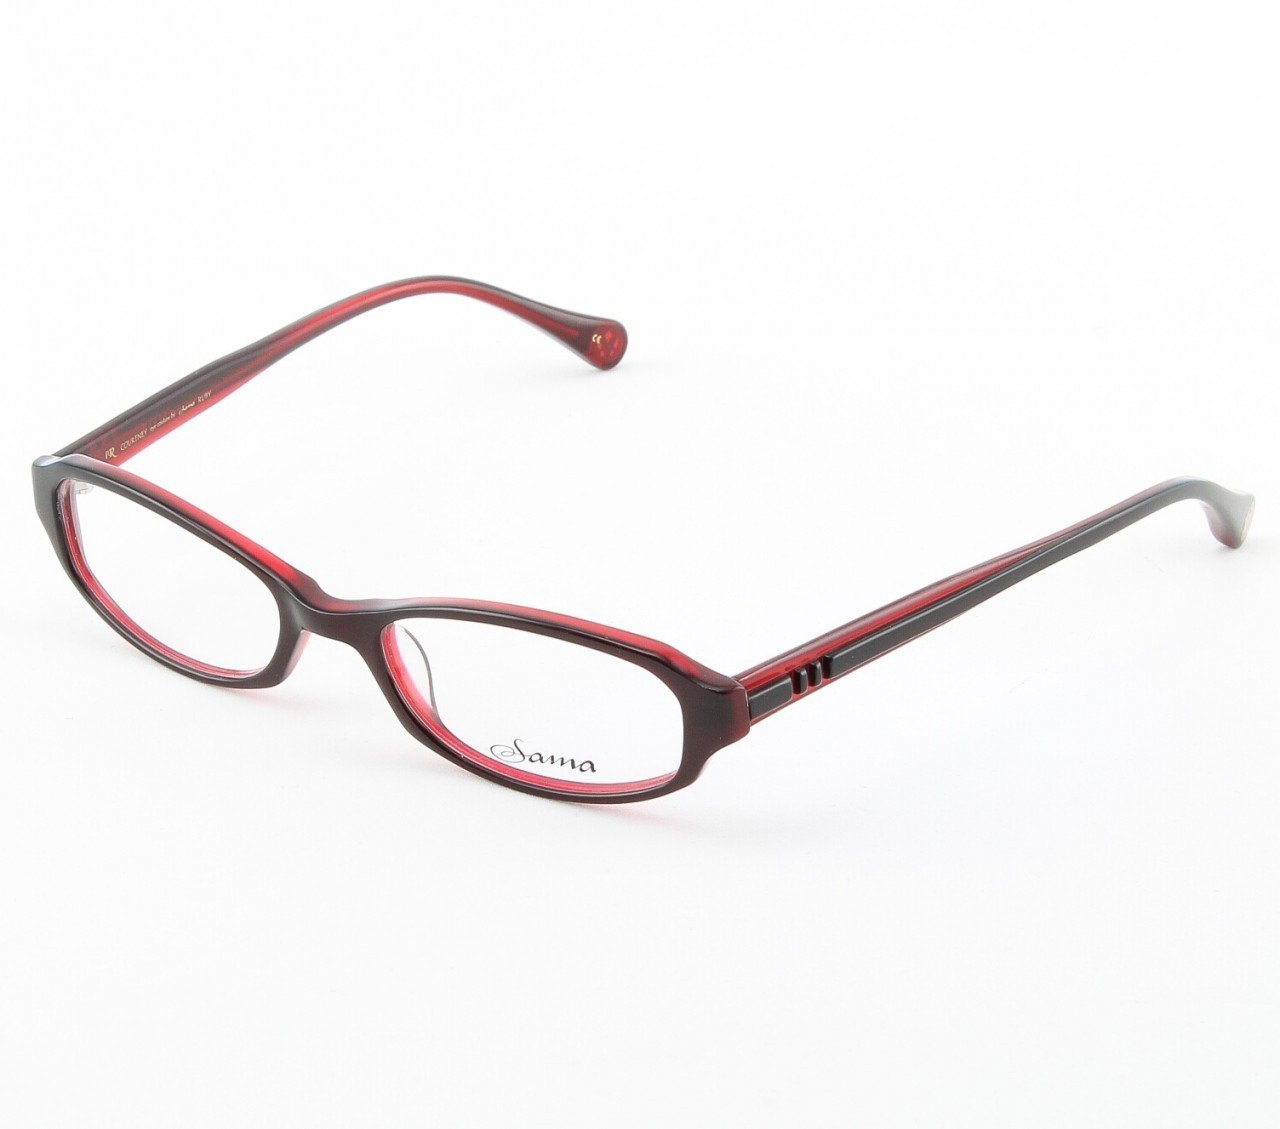 Loree Rodkin Courtney Eyeglasses by Sama Col. Ruby with Clear Lenses